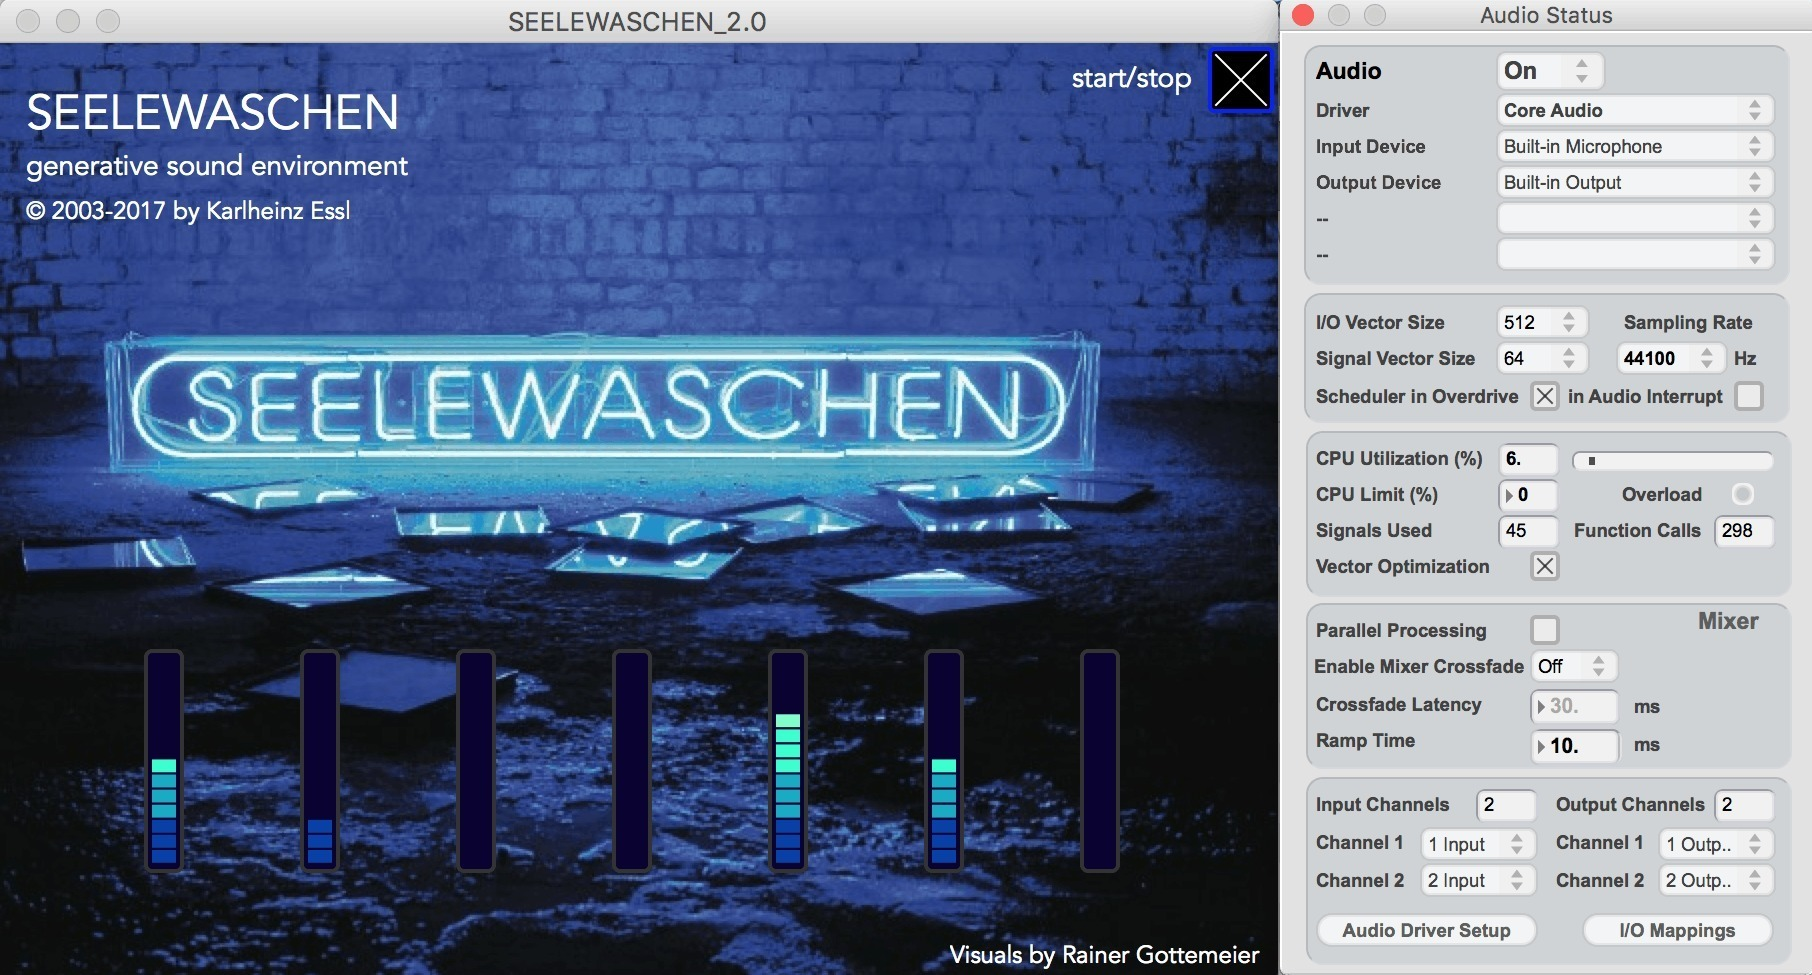 Screenshot 1 for SEELEWASCHEN